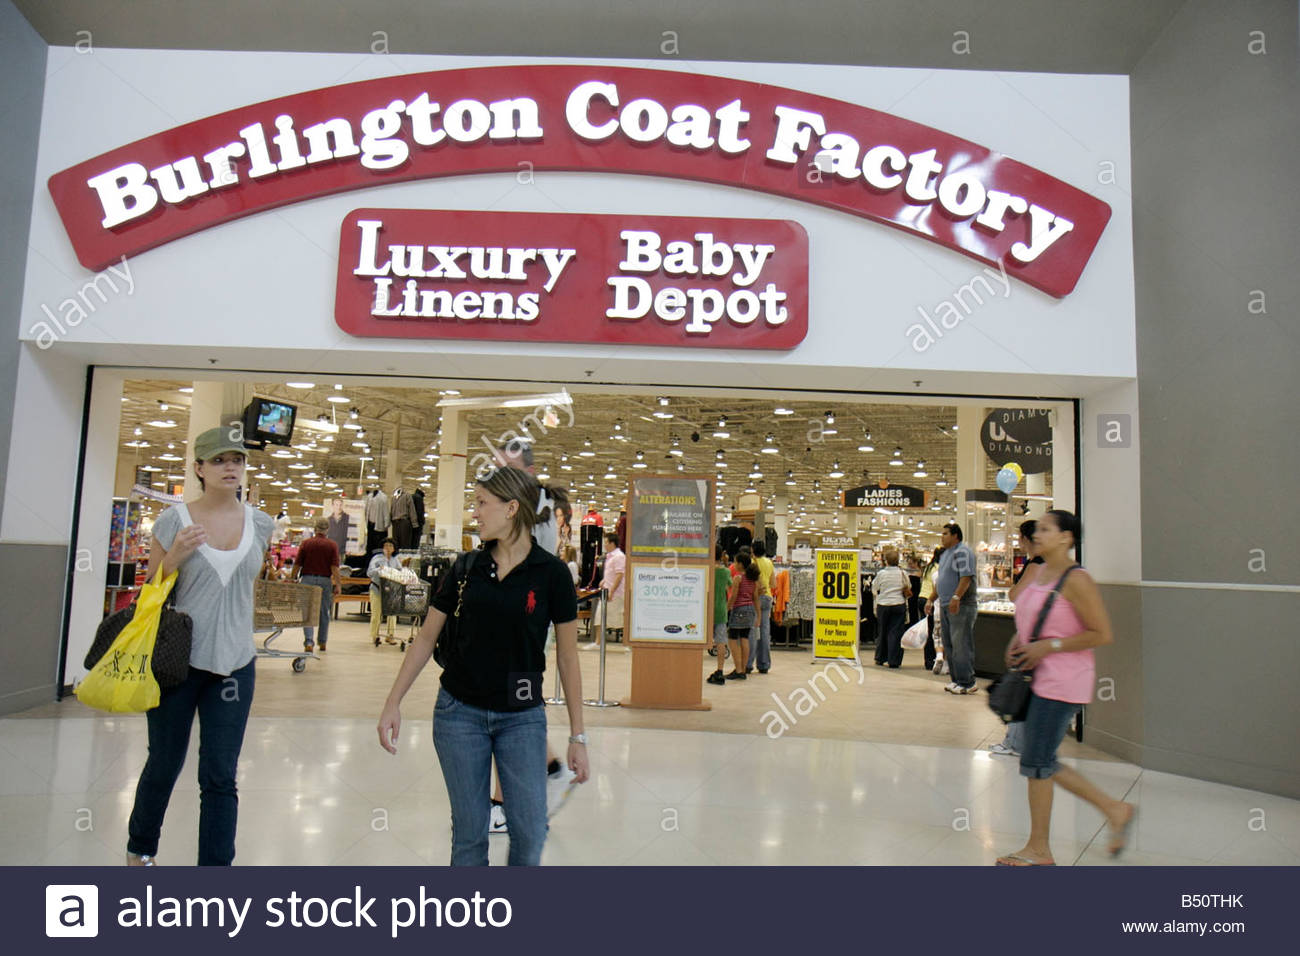 Clothing stores in florida